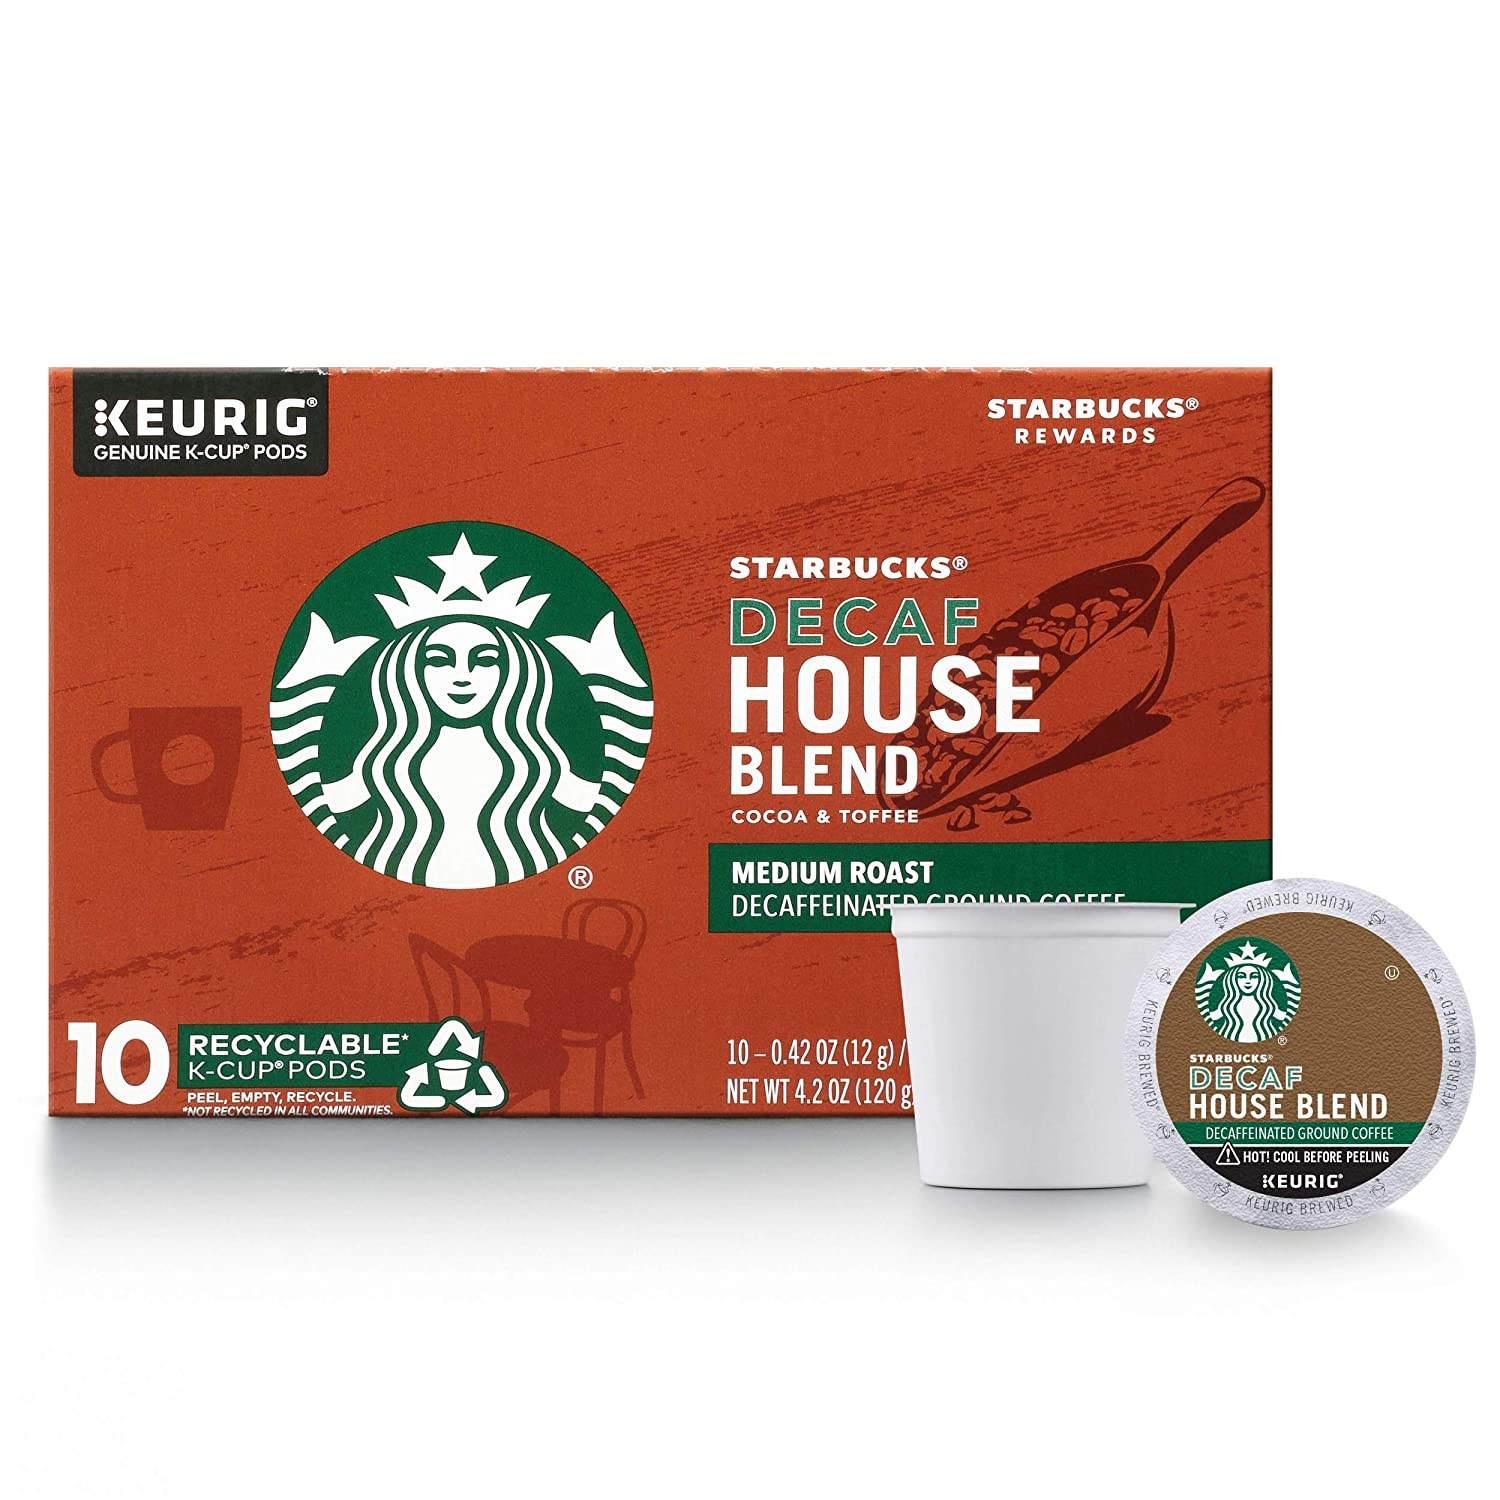 Starbucks Decaf House Blend Medium Roast Single Cup Coffee for Keurig Brewers, 1 Box of 10 (10 Total K-Cup pods)